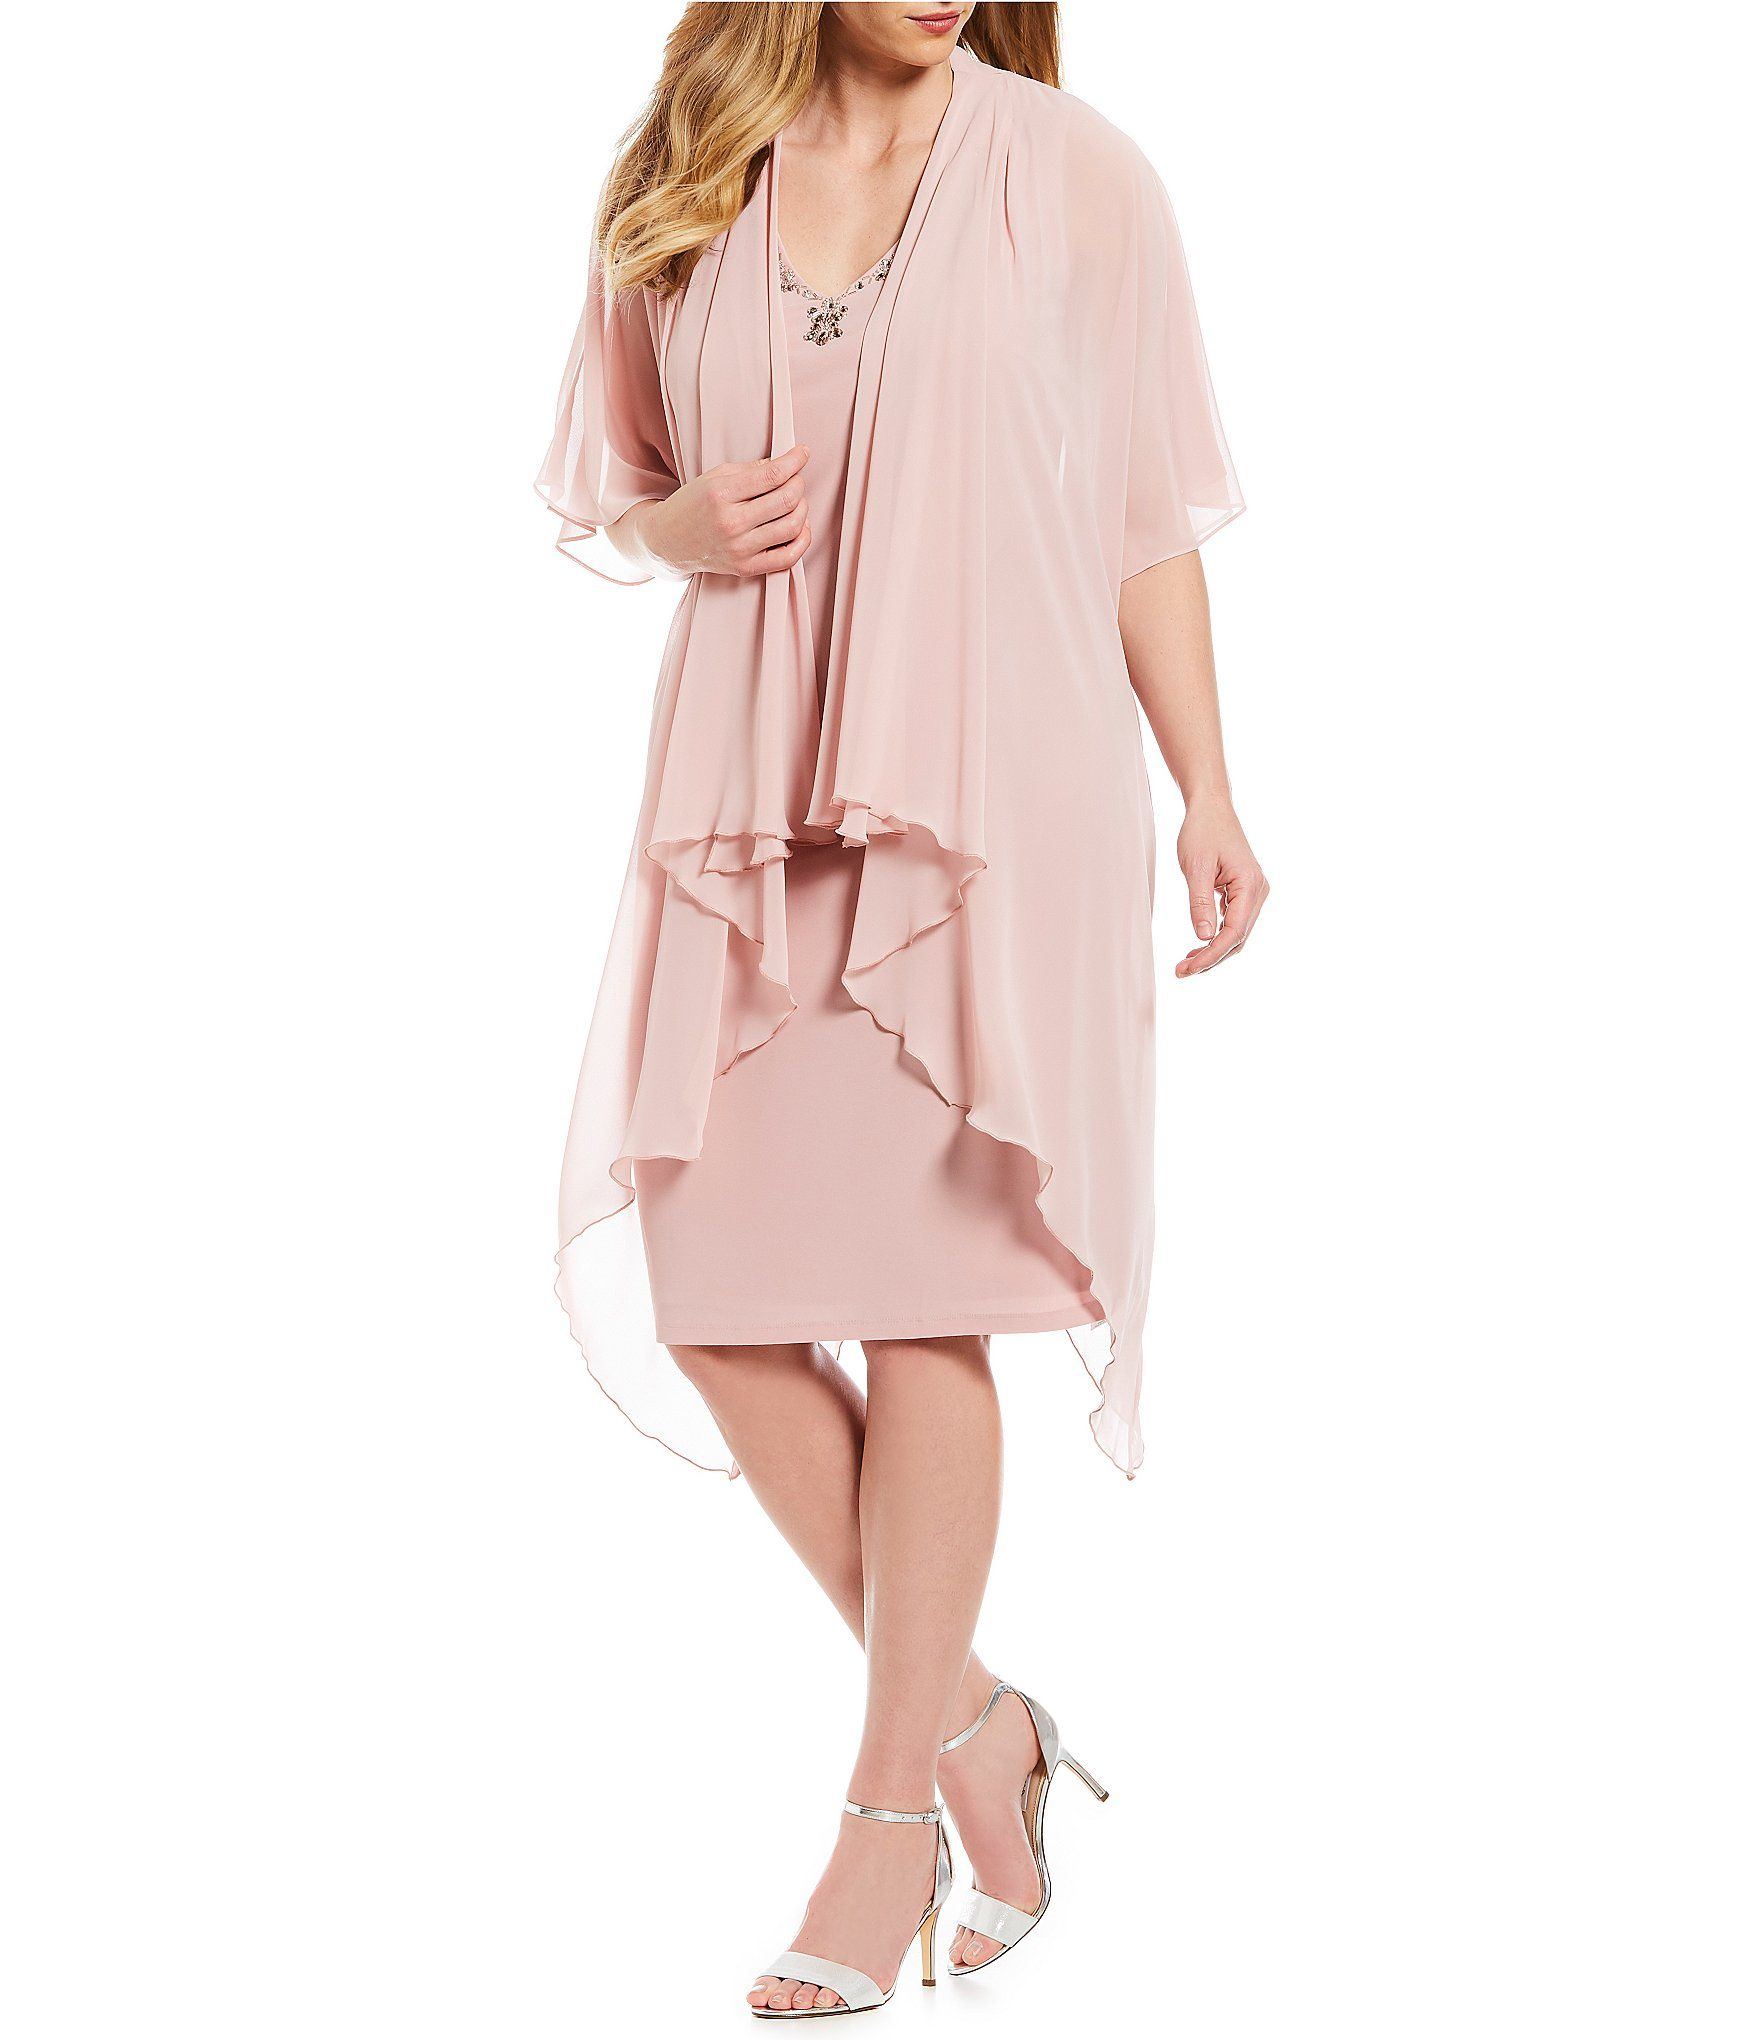 Dillards Mother Of The Groom Plus Size Dresses - Ficts